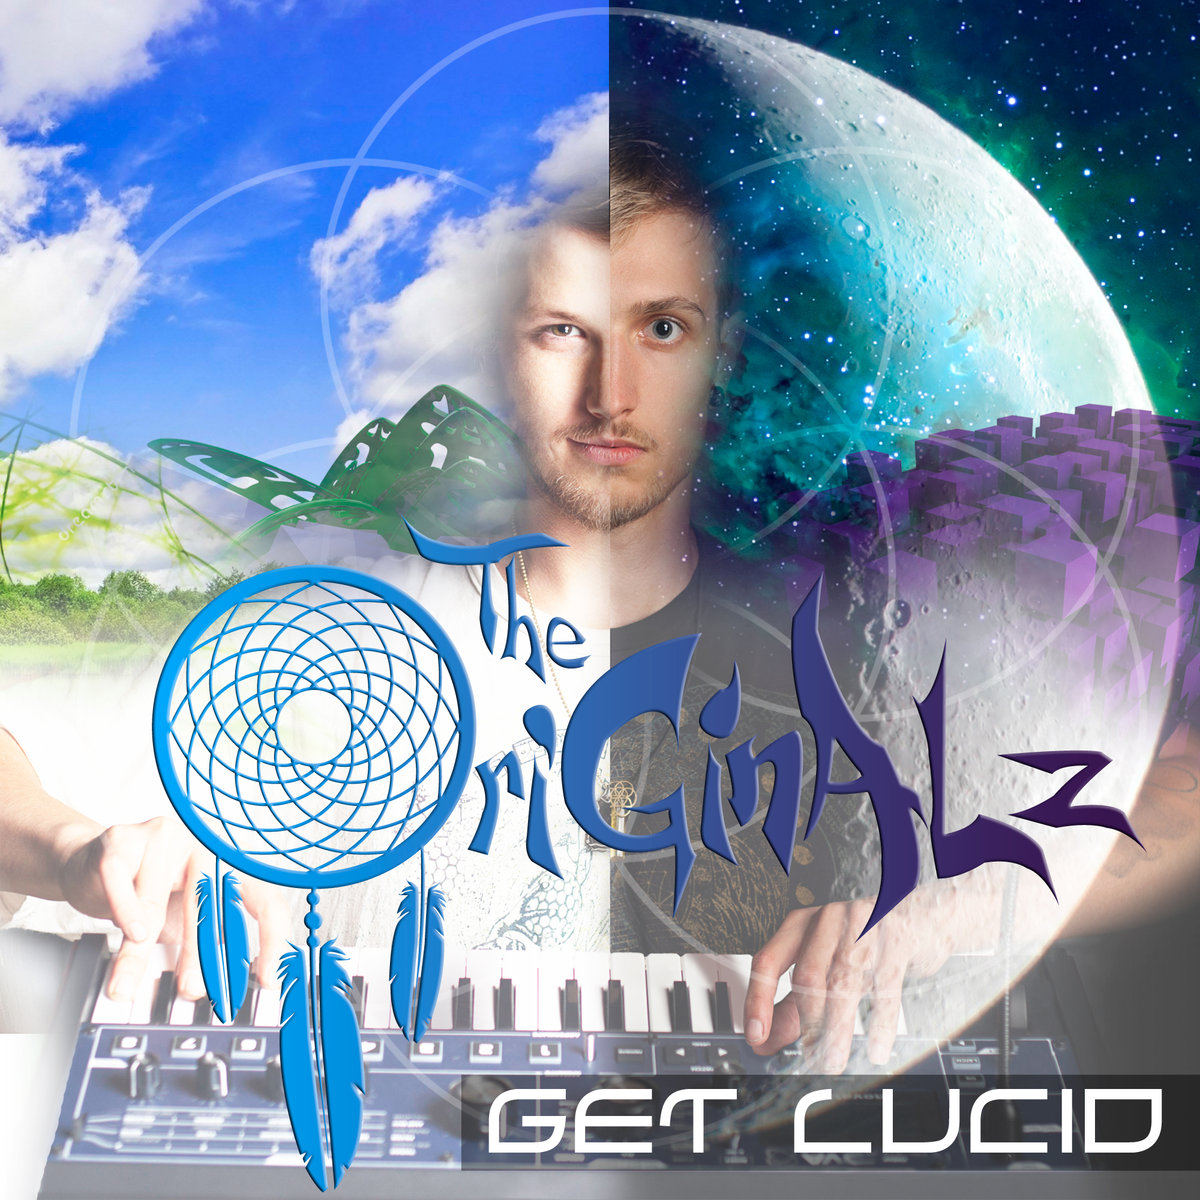 The OriGinALz - Entheogen @ 'Get Lucid' album (Austin)